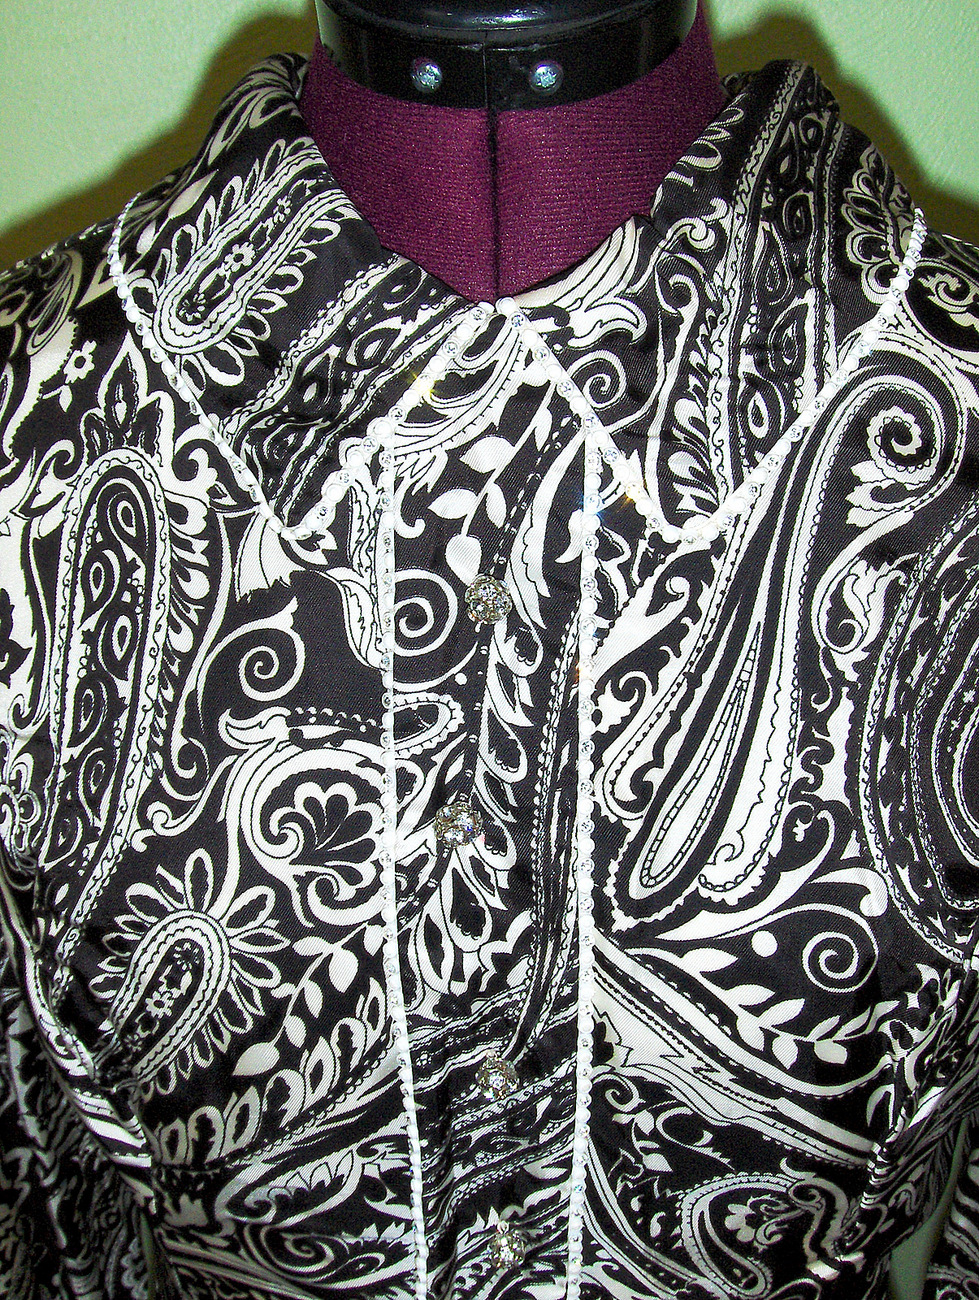 Unique Funky 60's Vintage Mod Paisley Dress Rhinestones